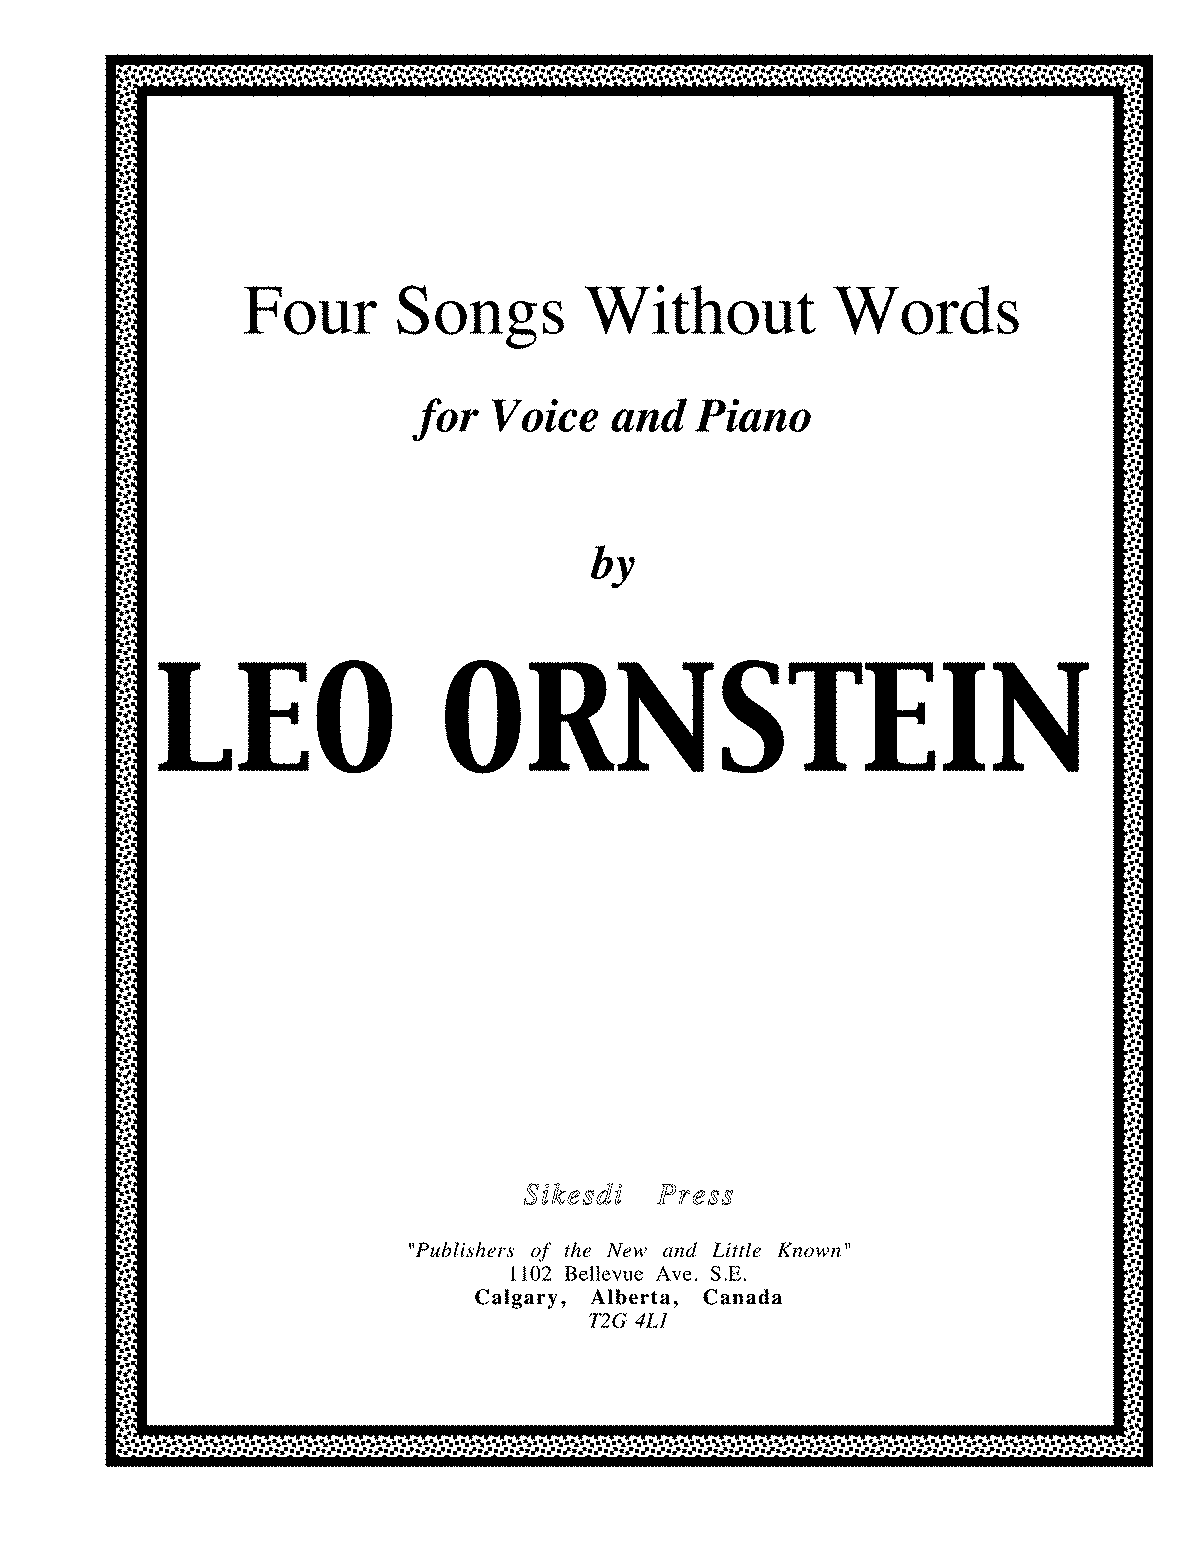 S701 - Four Songs w.o. wrds.pdf